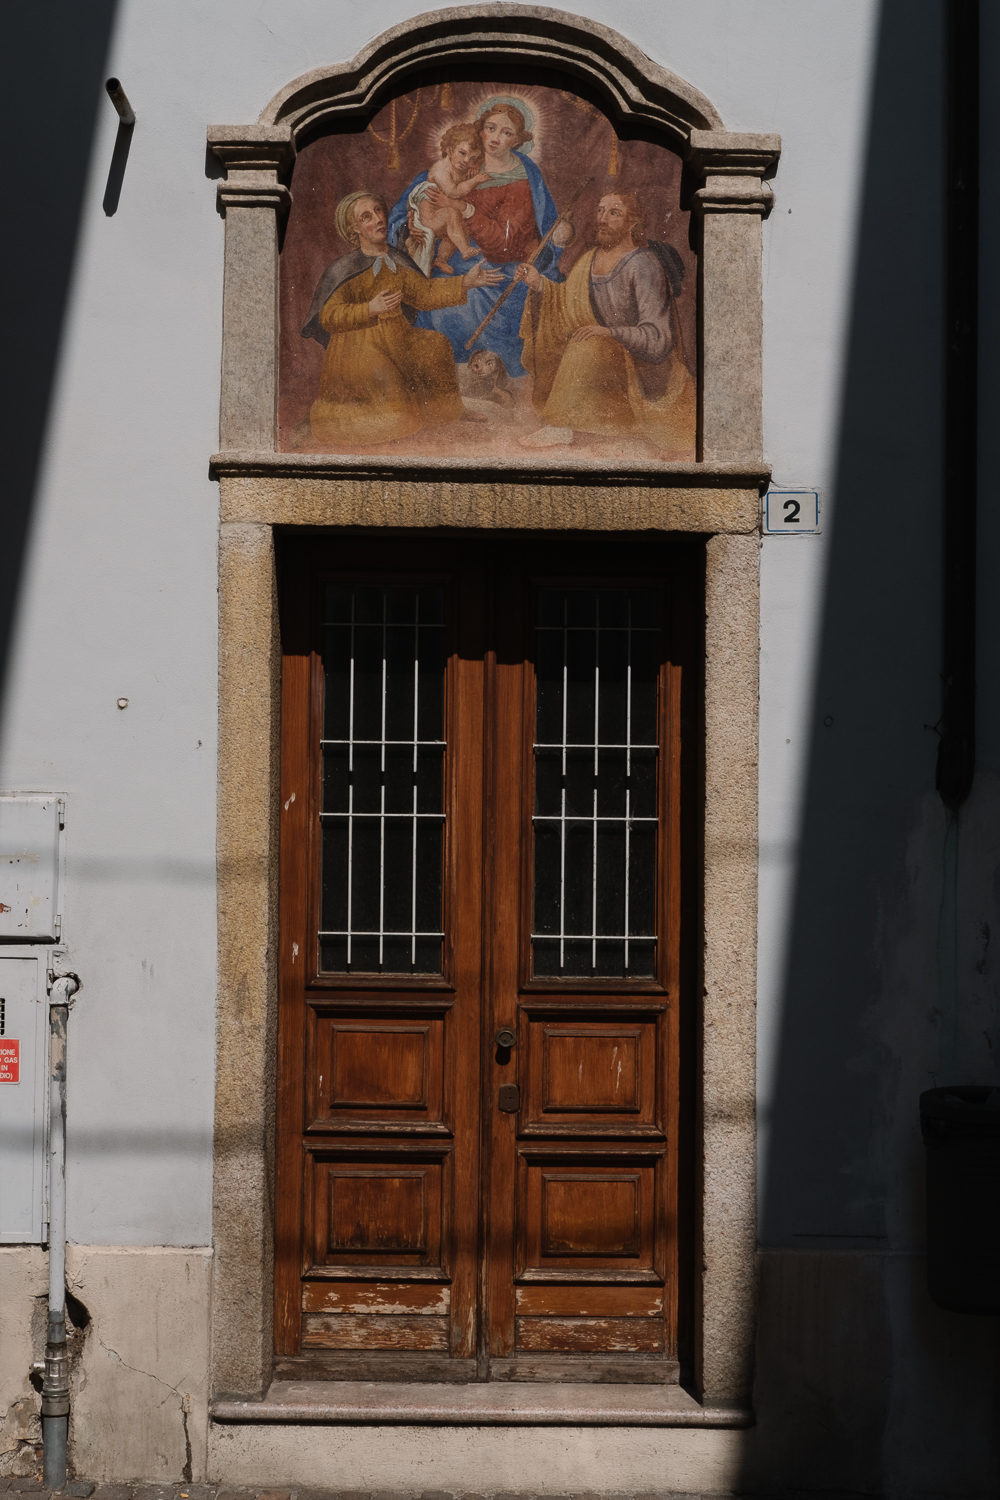 The morning light catching a fresco in Stresa town centre